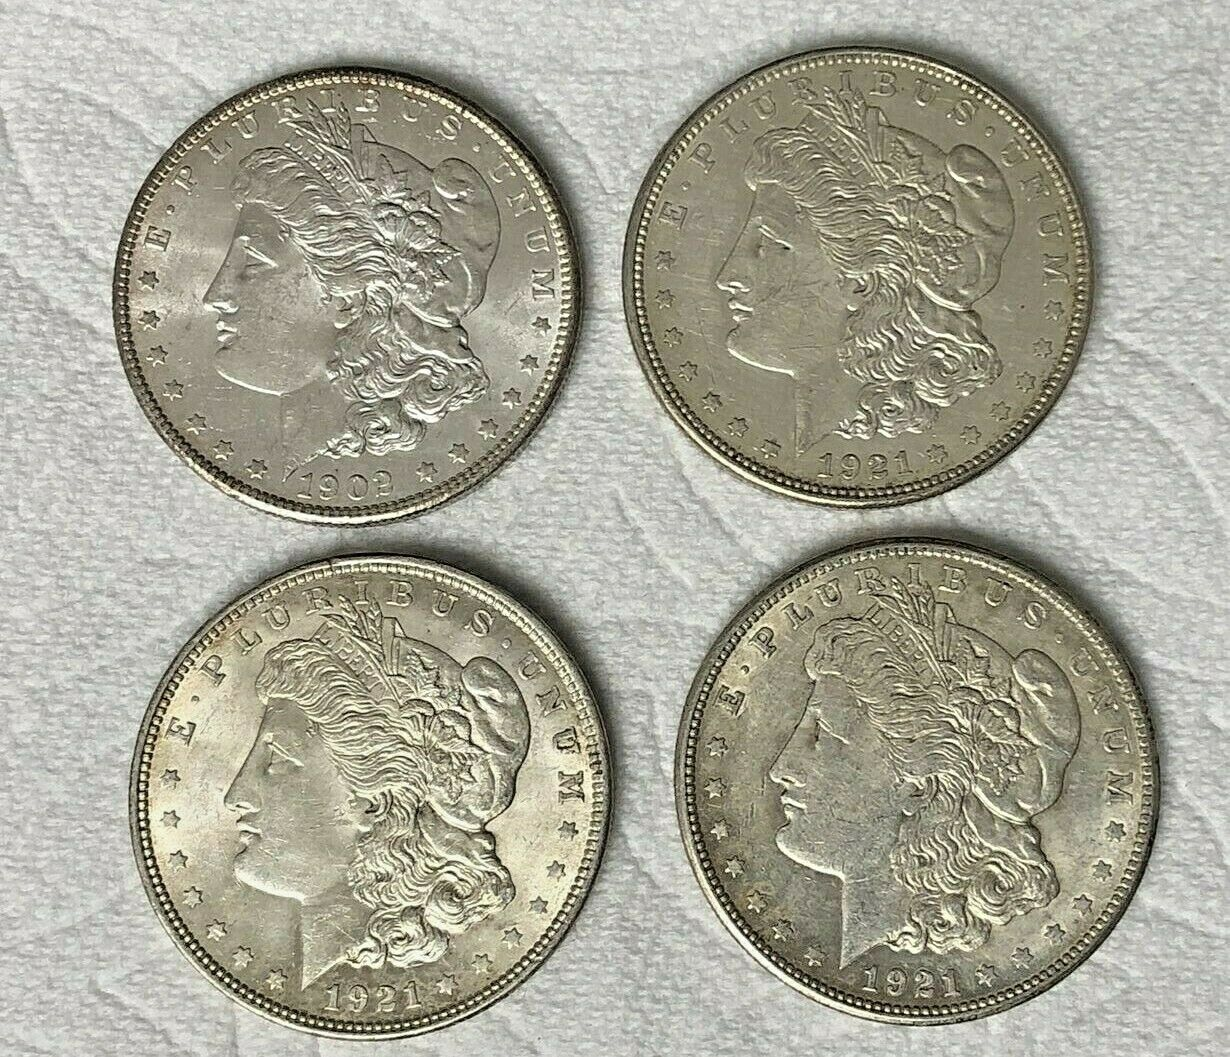 4 MORGAN SILVER DOLLARS 1902-O, 1921-P, 1921-D, 1921-S SILVER COIN LOT B3-13  - $118.50